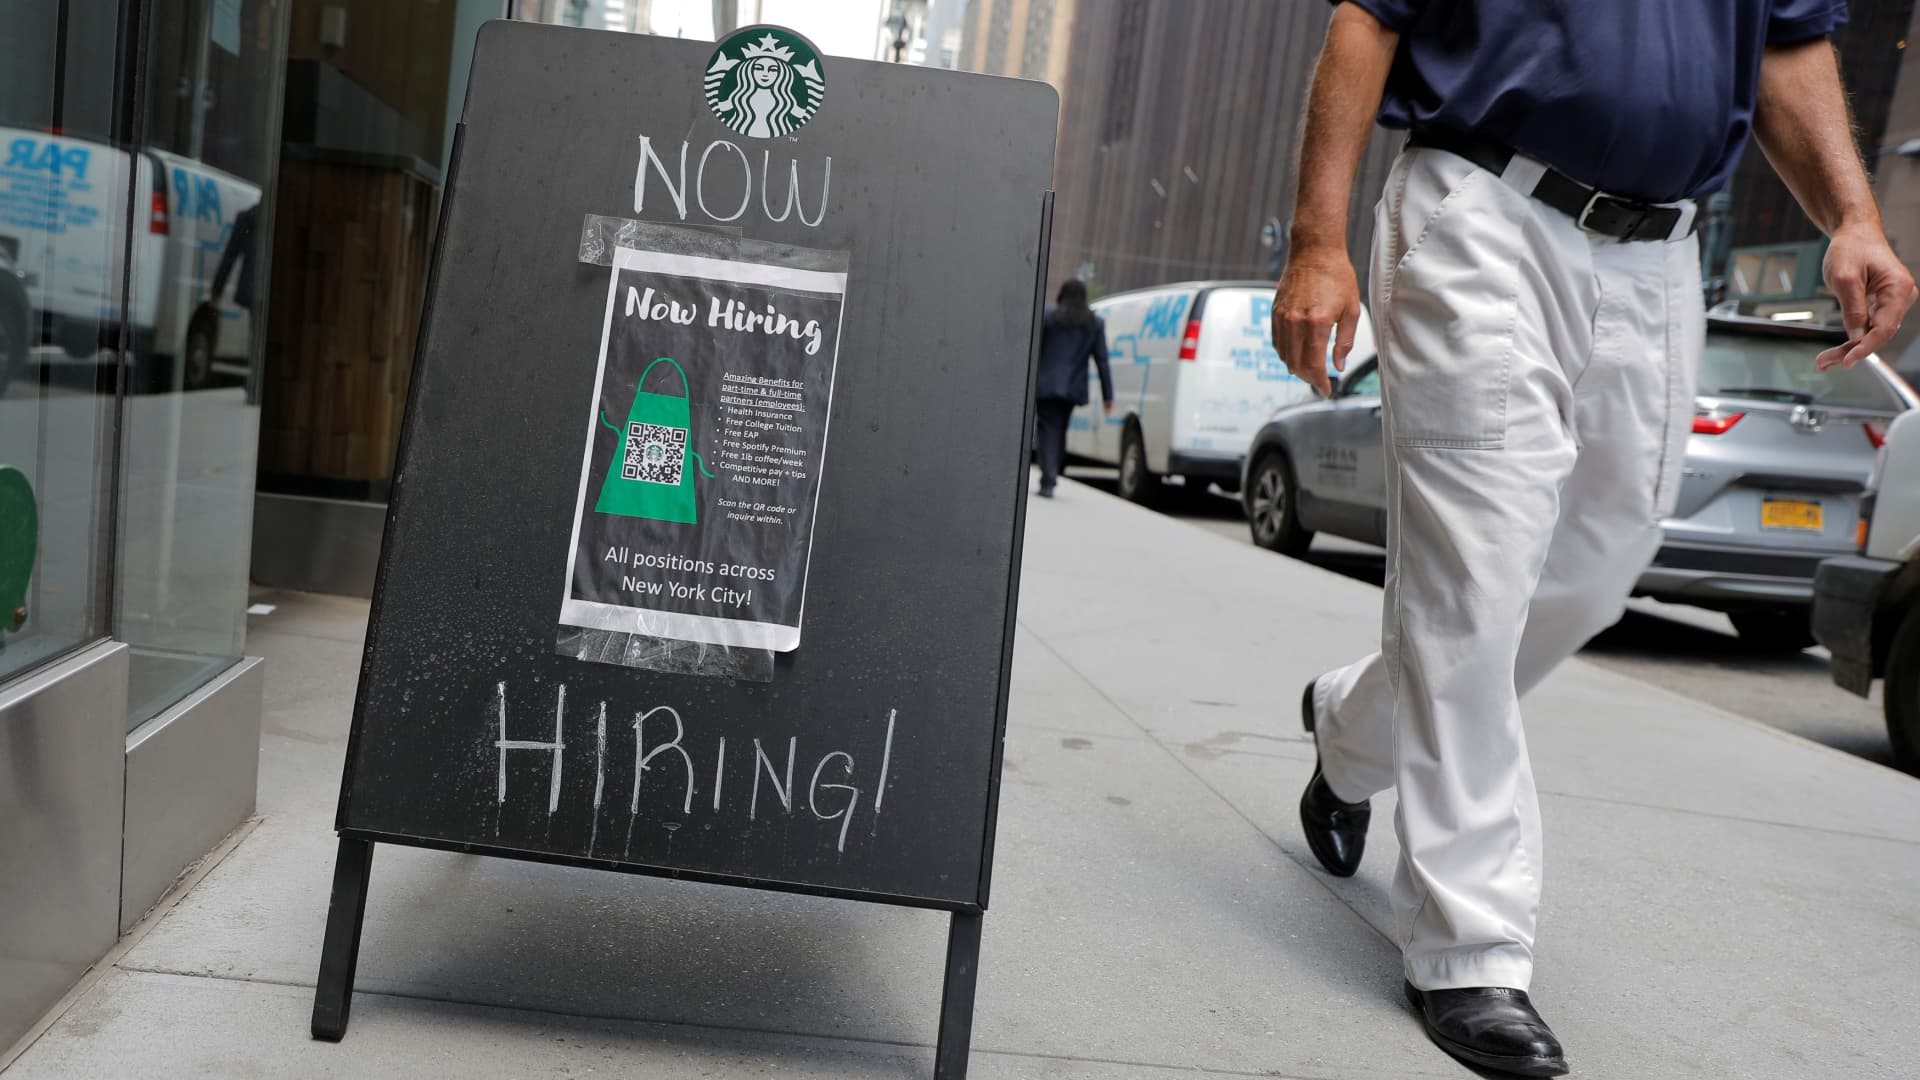 A sign advertising job openings is seen outside of a Starbucks in Manhattan, New York City, New York, U.S., May 26, 2021.